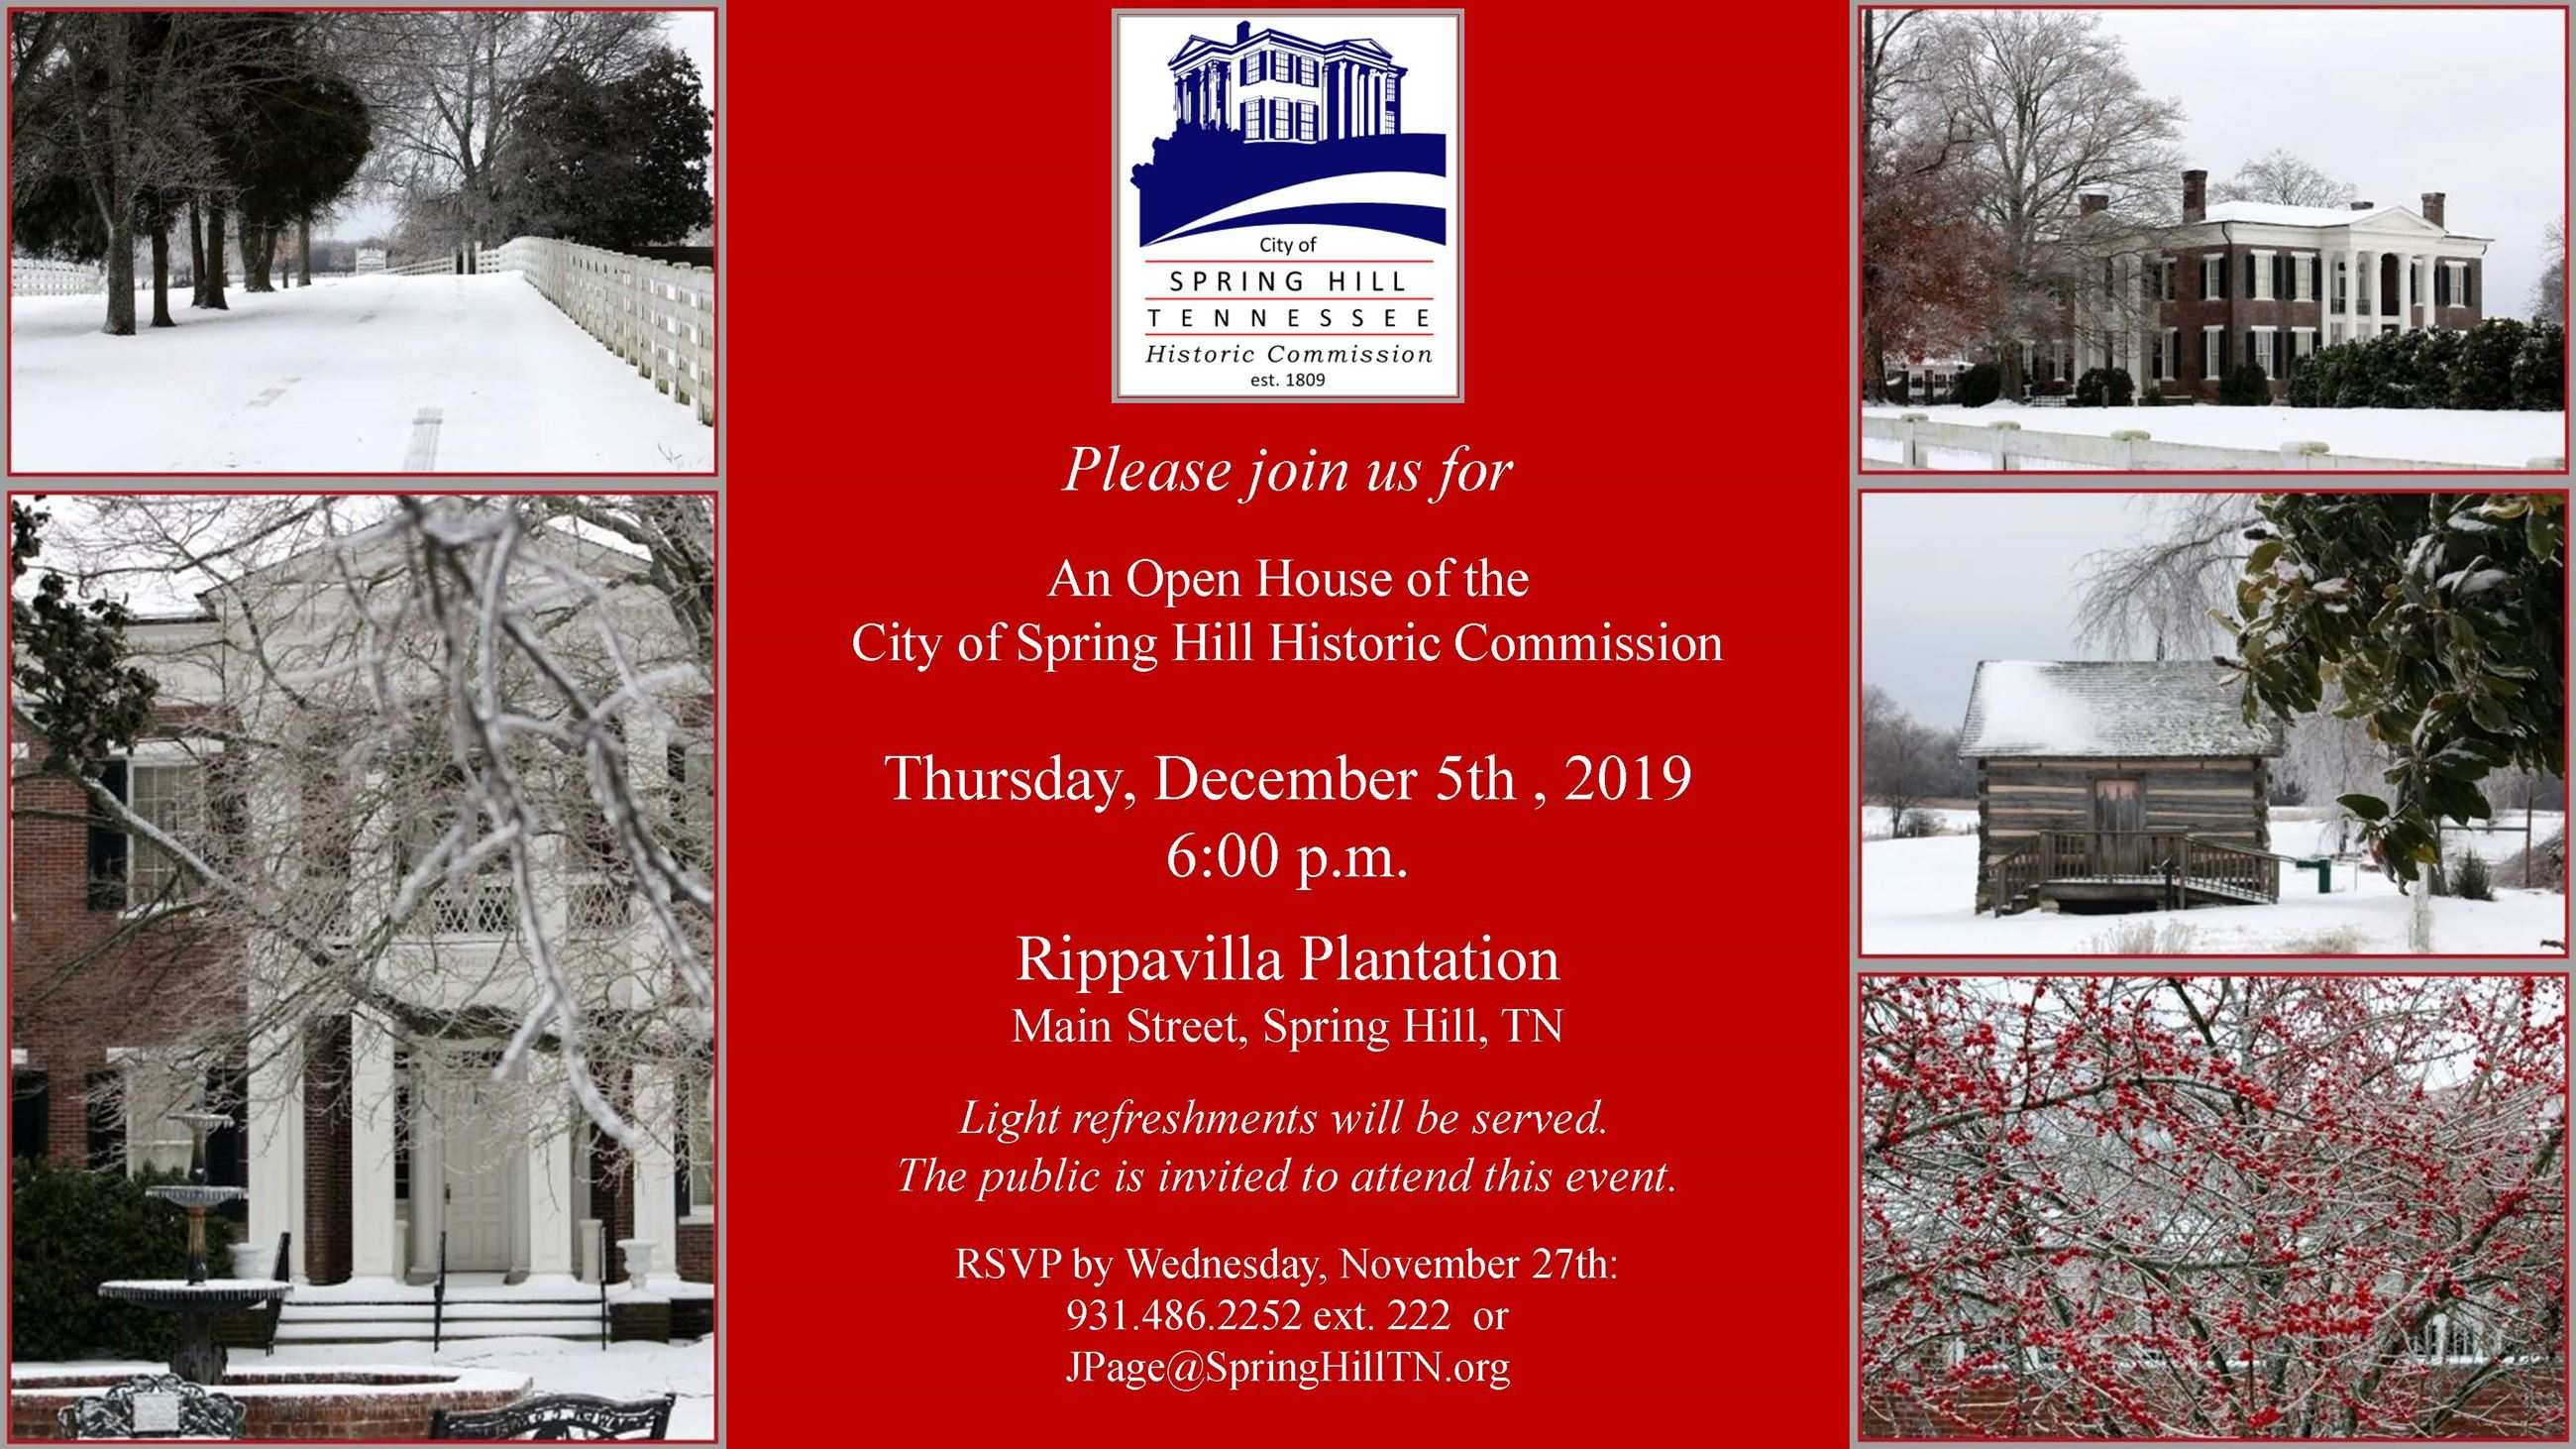 historic commisson christmas open house event